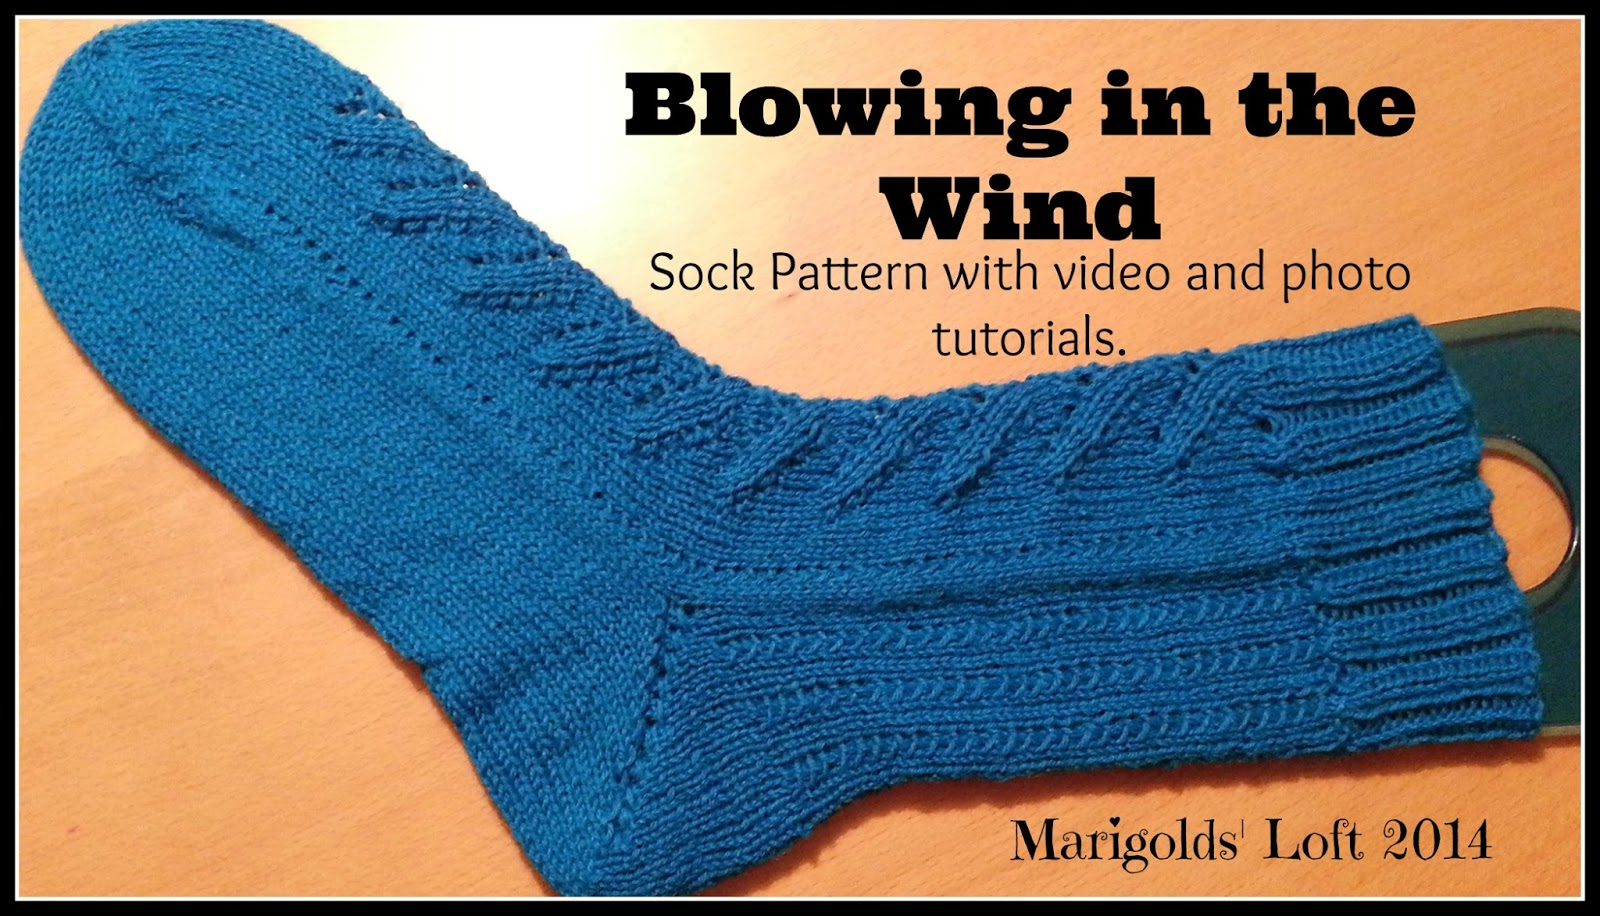 blowing in the wind sock tutorial pattern